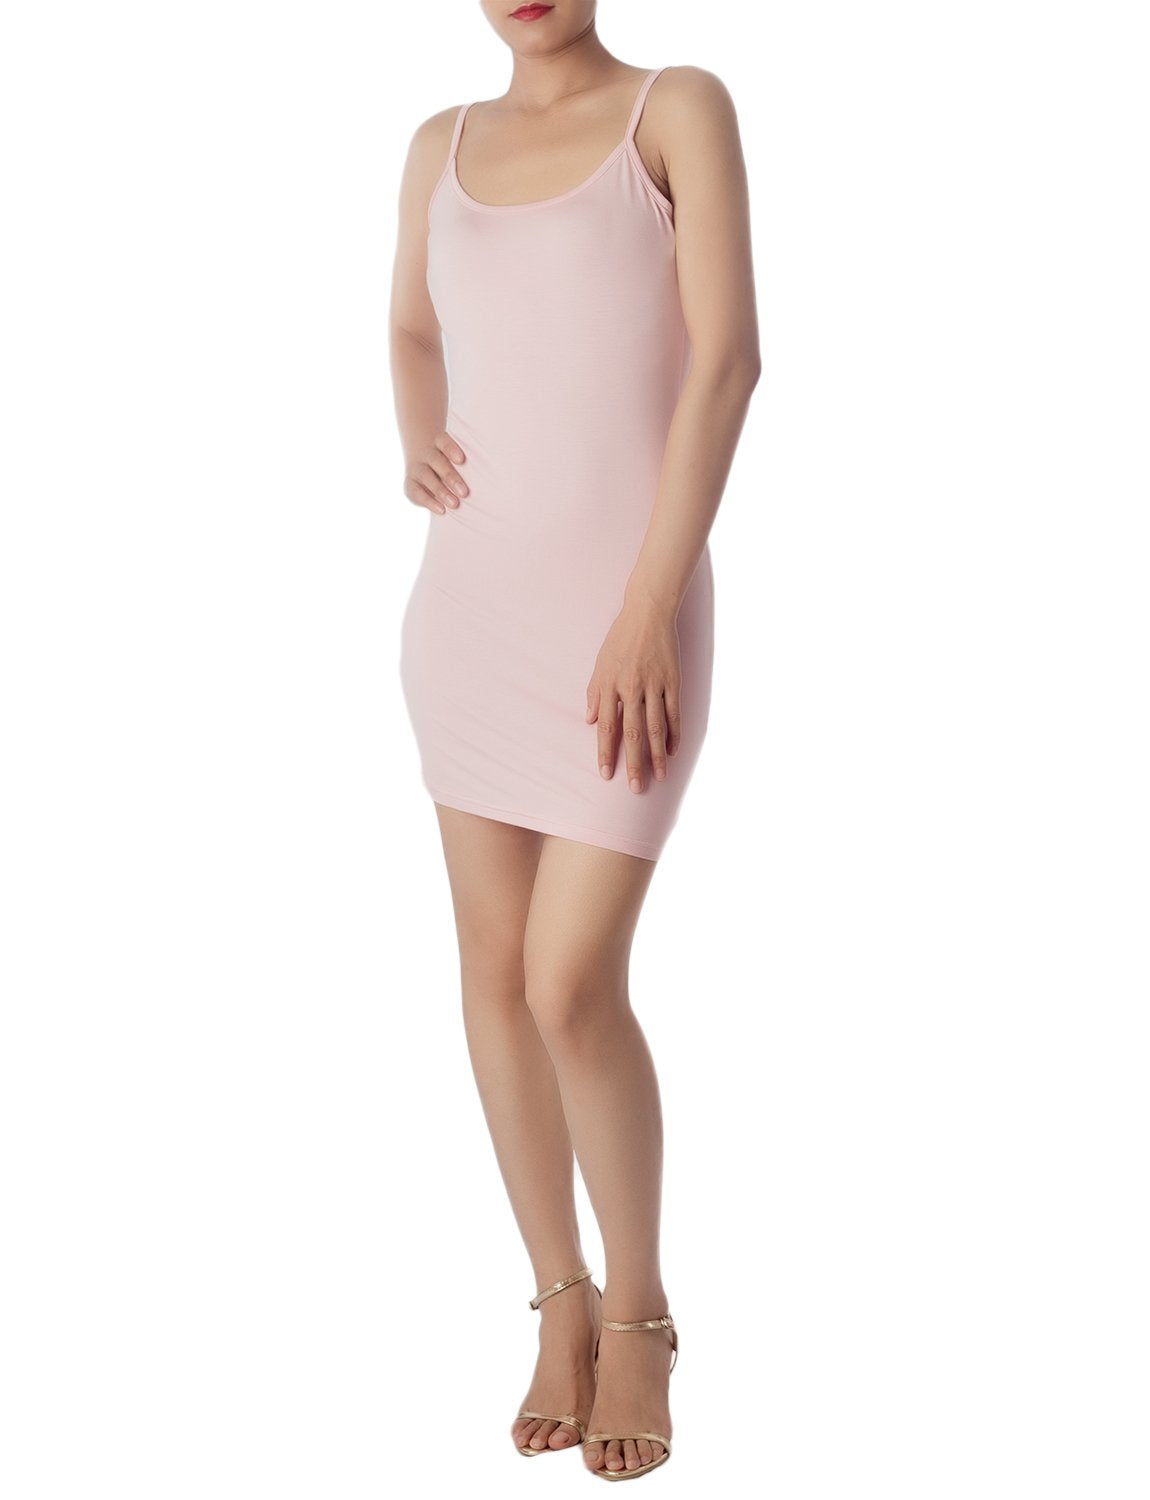 Women's Cotton Under Dress Short Slip Slim Control Mid-Thigh Bodycon Dress, Size: 2XL, Pink